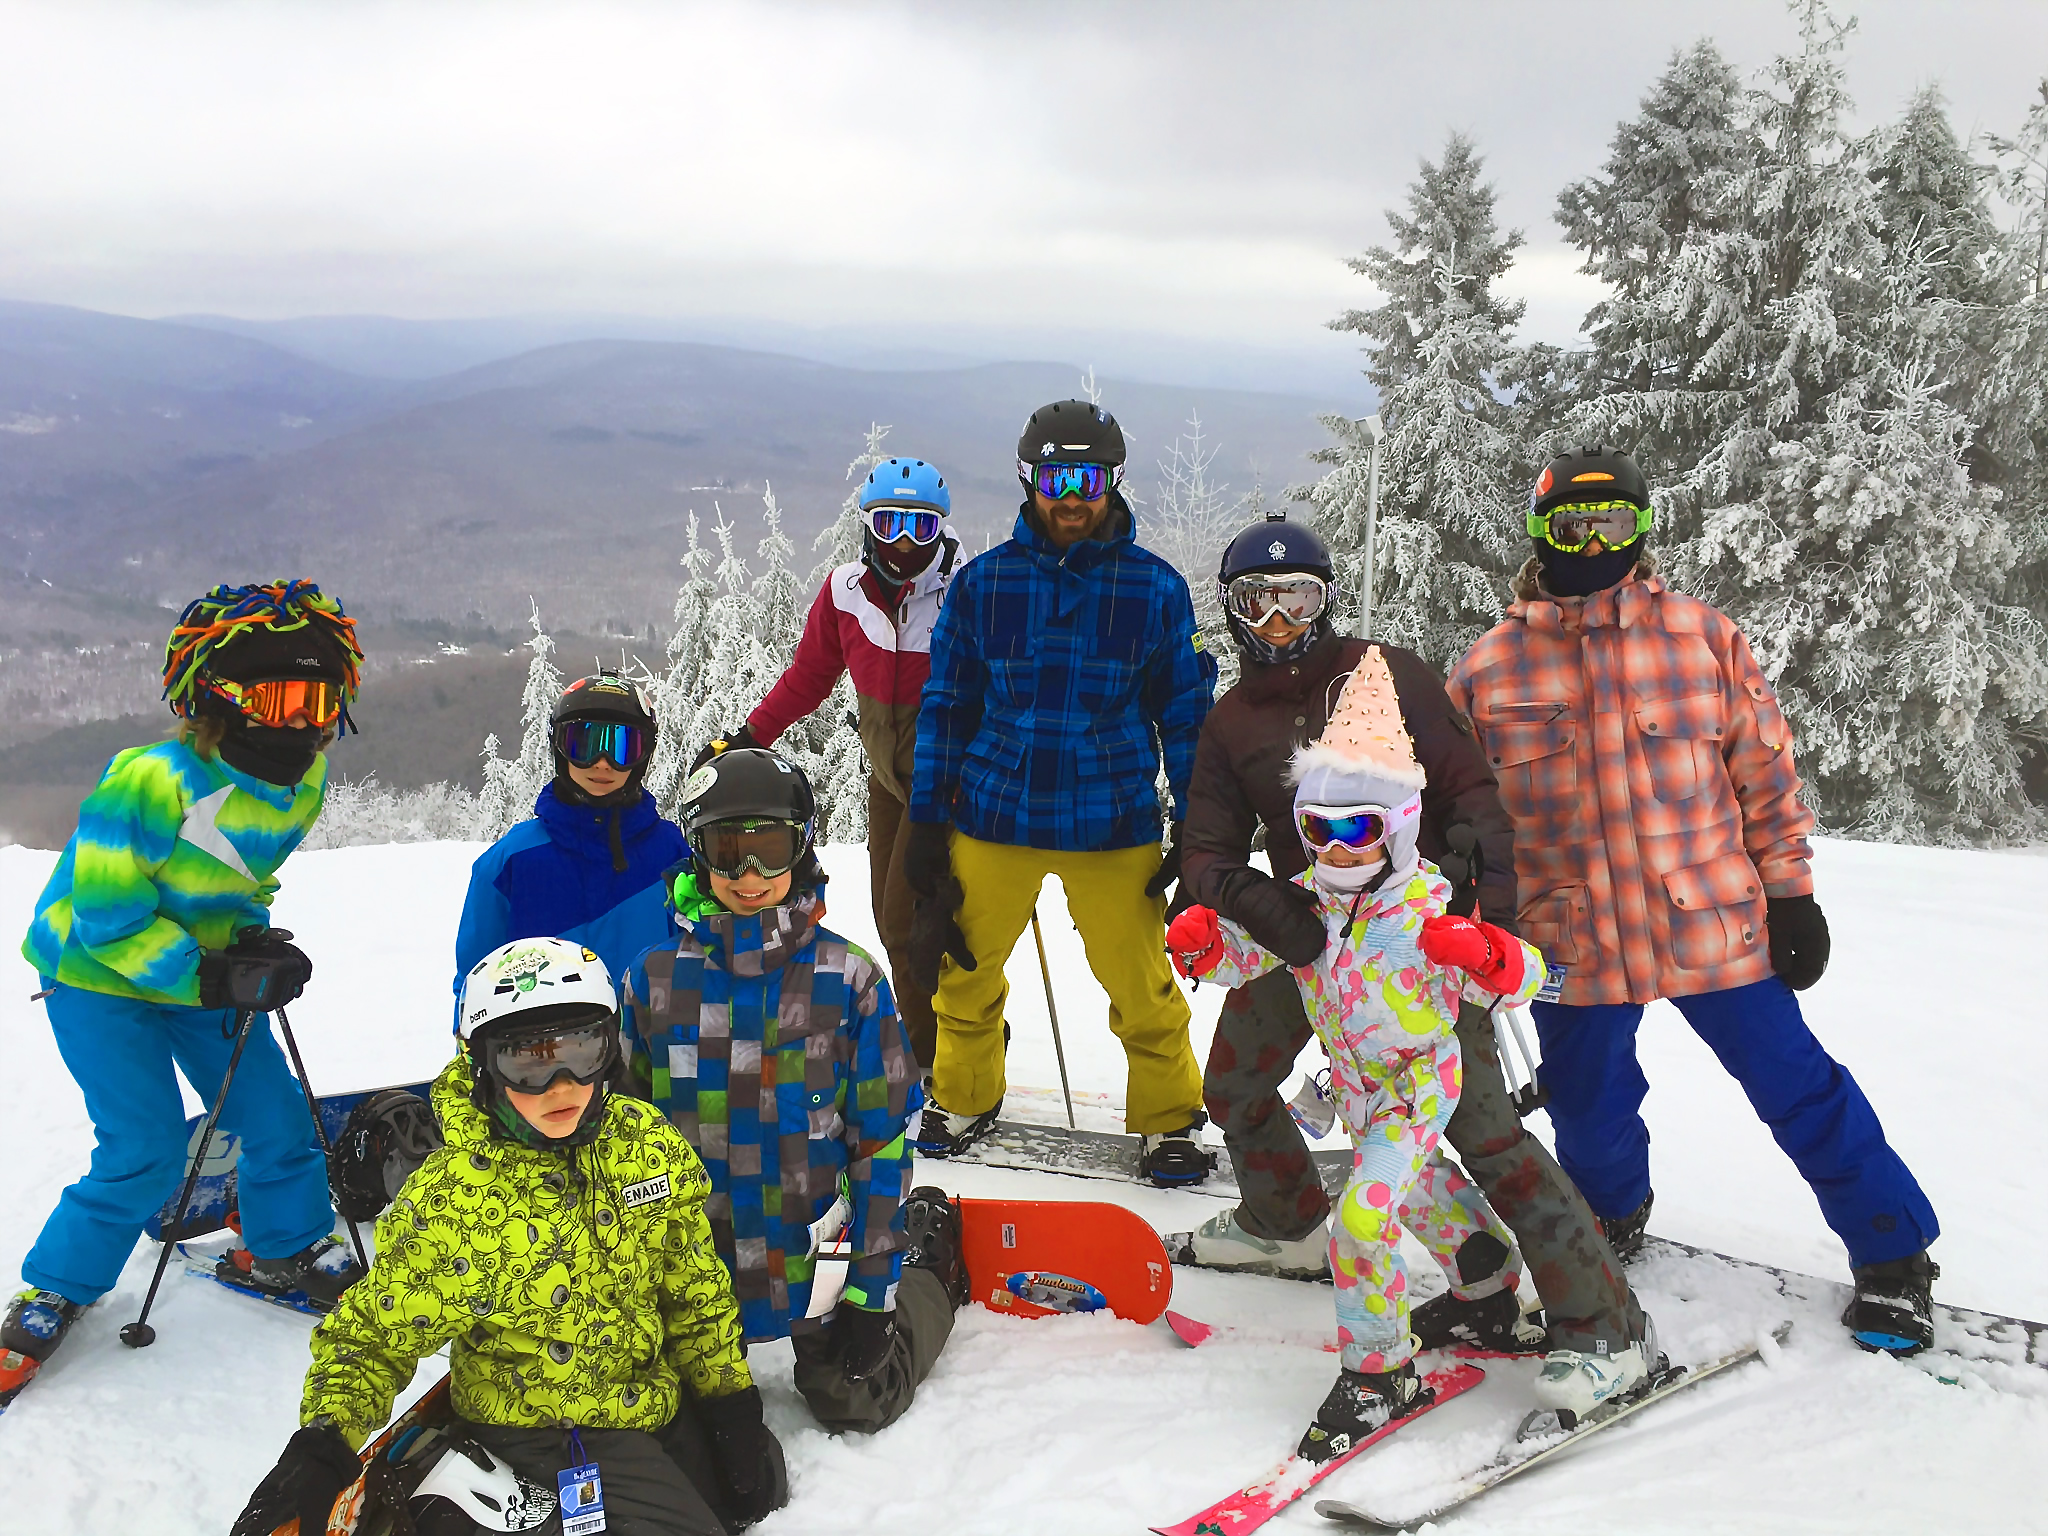 family of skiers and riders